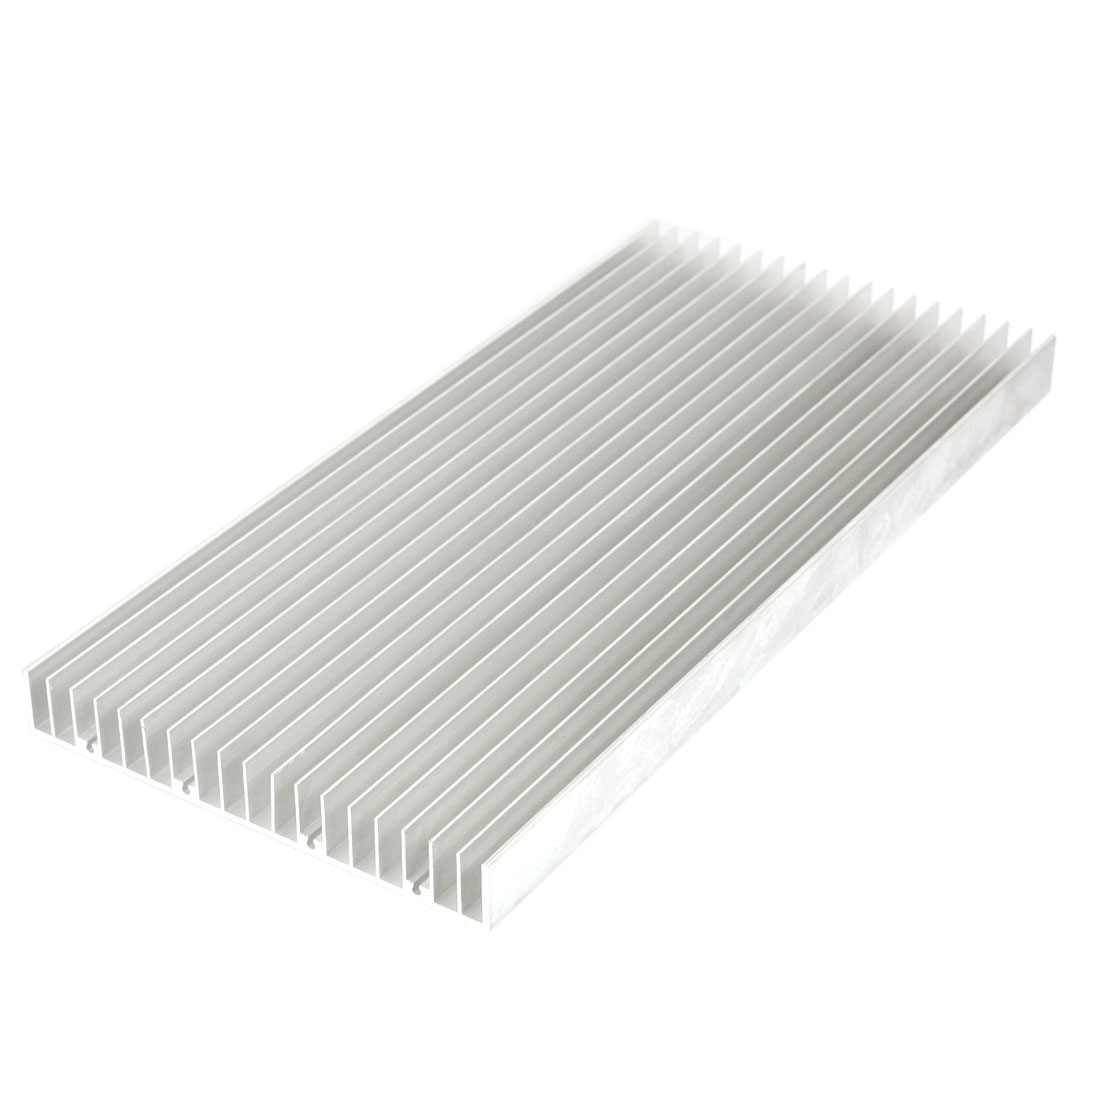 Silver White 300mmx140mmx18mm LED Heat Sink Aluminum Cooling Fin